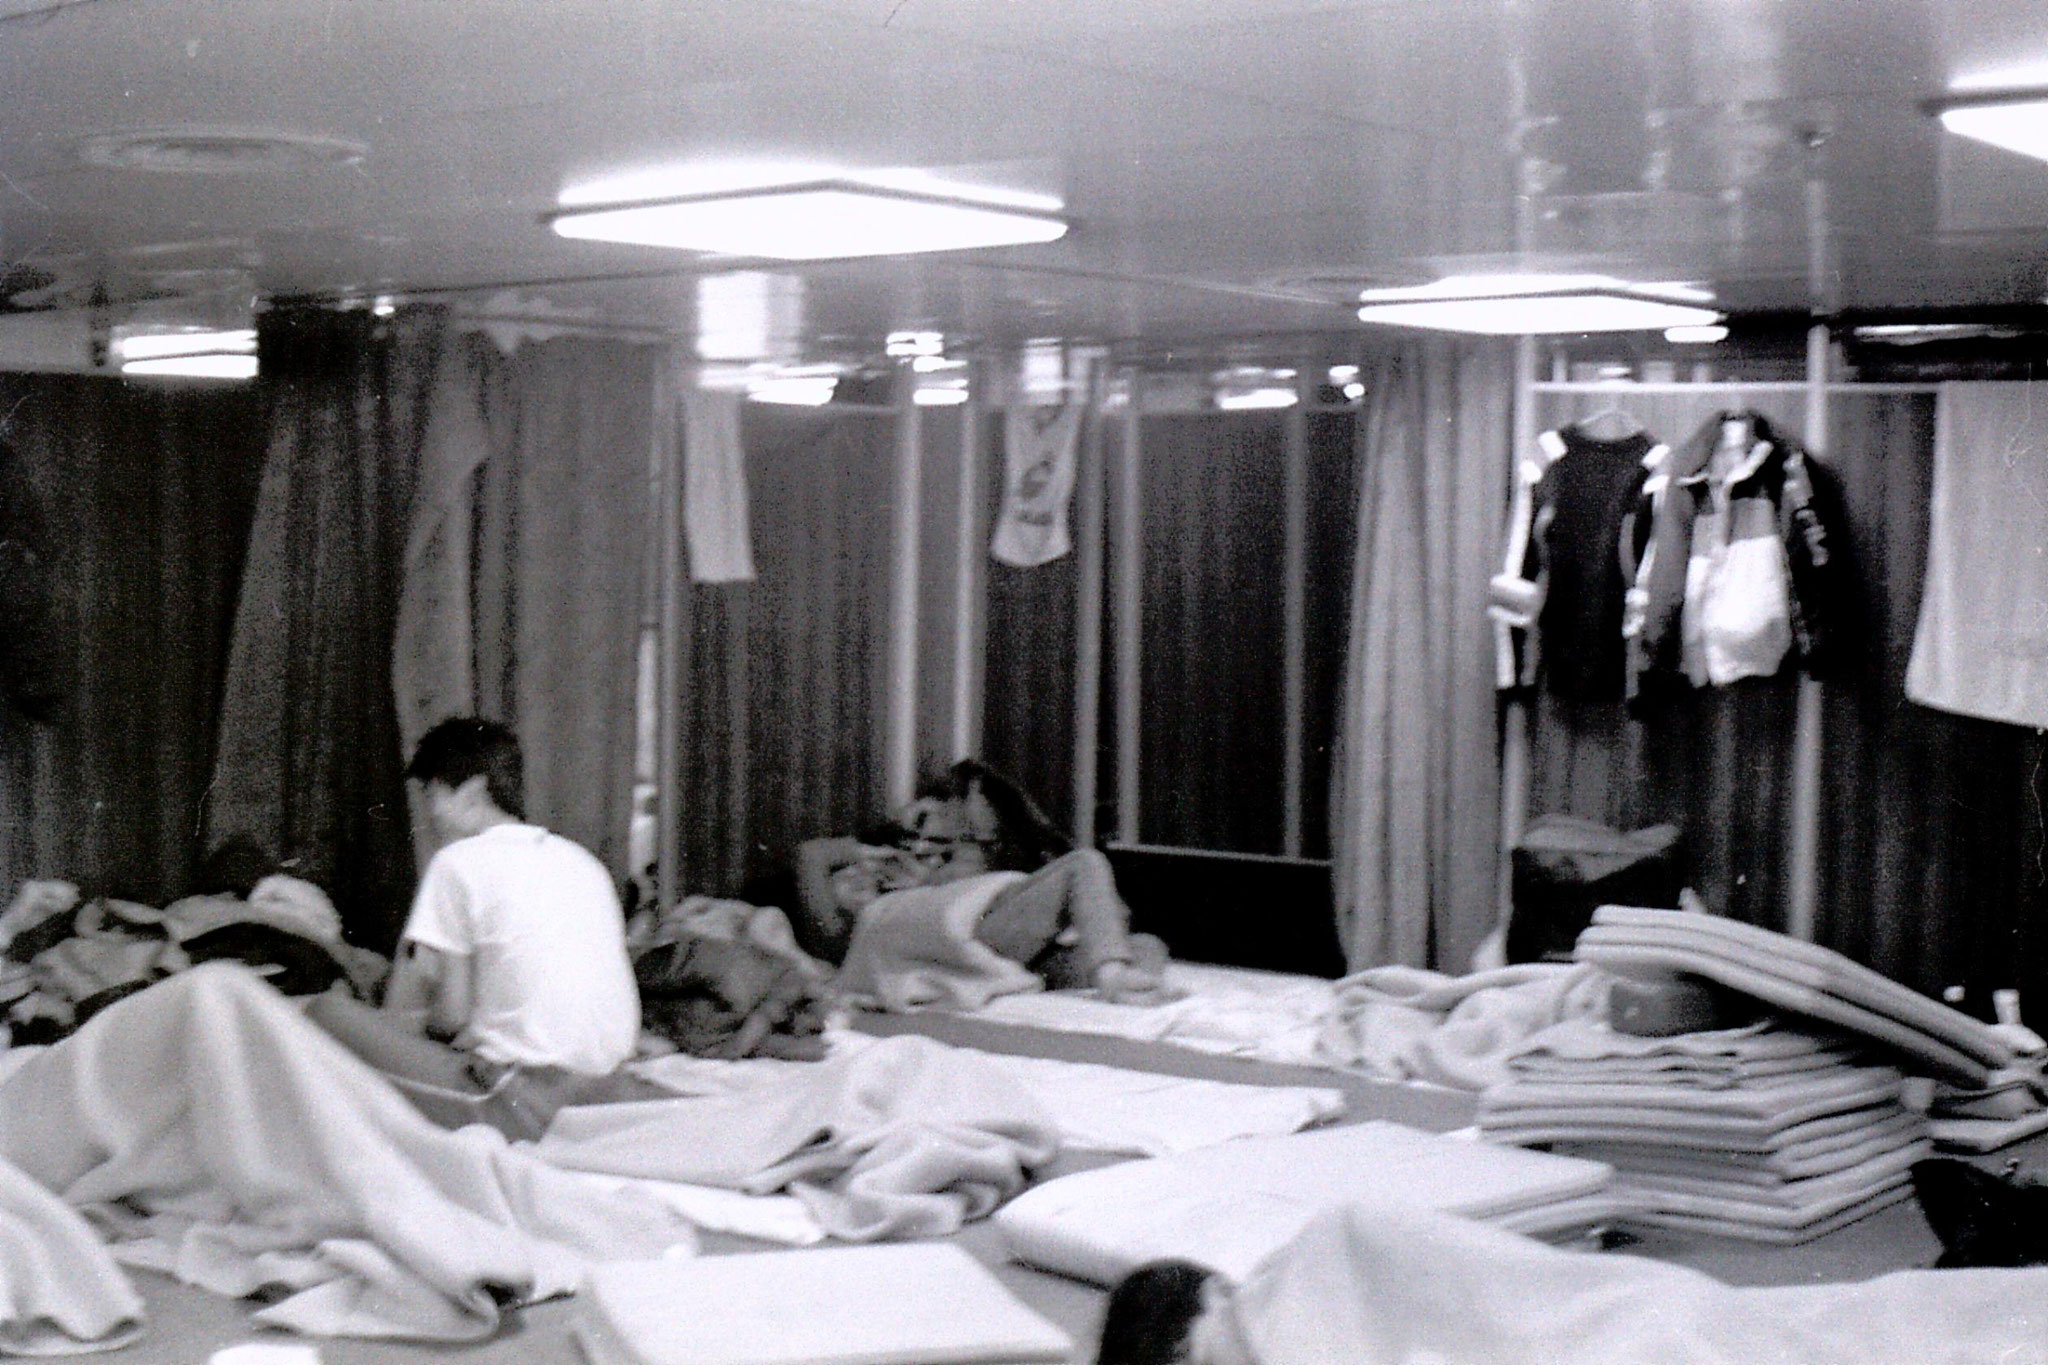 6/2/1989: 29: sleeping quarters on boat to Shanghai